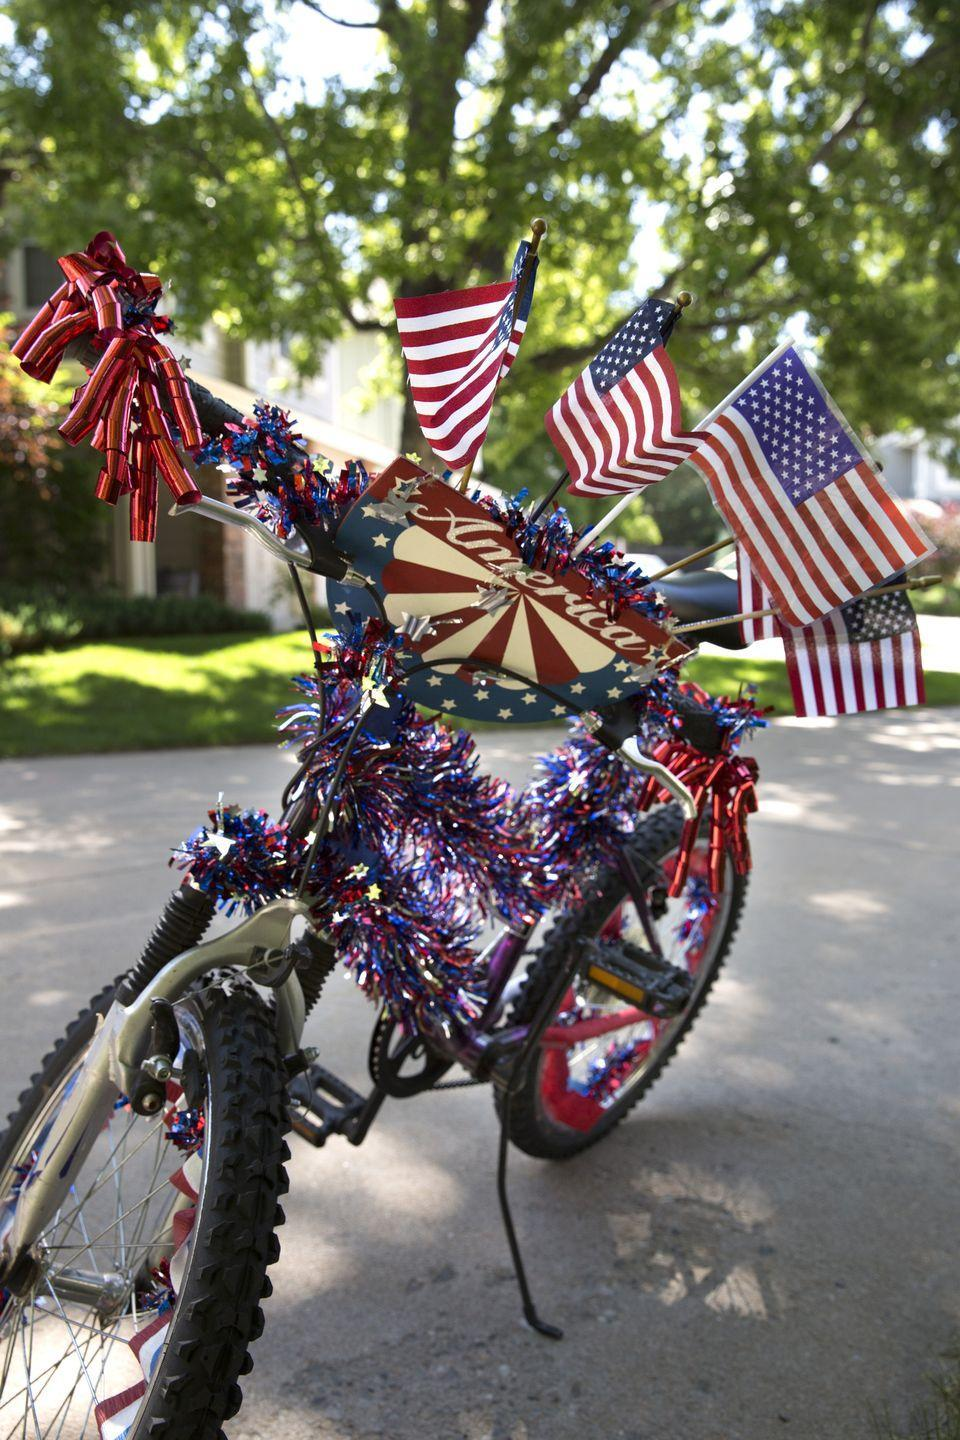 """<p>Your family can have your very own parade by decorating your bikes with flags, streamers, and ribbons, and setting off together for a few casual laps around the block. The ride will help everyone work up an appetite before the celebratory barbecue. </p><p><a class=""""link rapid-noclick-resp"""" href=""""https://www.amazon.com/White-Patriotic-Crepe-Paper-Streamers/dp/B00BFX7AEU/?tag=syn-yahoo-20&ascsubtag=%5Bartid%7C10050.g.4463%5Bsrc%7Cyahoo-us"""" rel=""""nofollow noopener"""" target=""""_blank"""" data-ylk=""""slk:SHOP 4TH OF JULY STREAMERS"""">SHOP 4TH OF JULY STREAMERS</a></p>"""